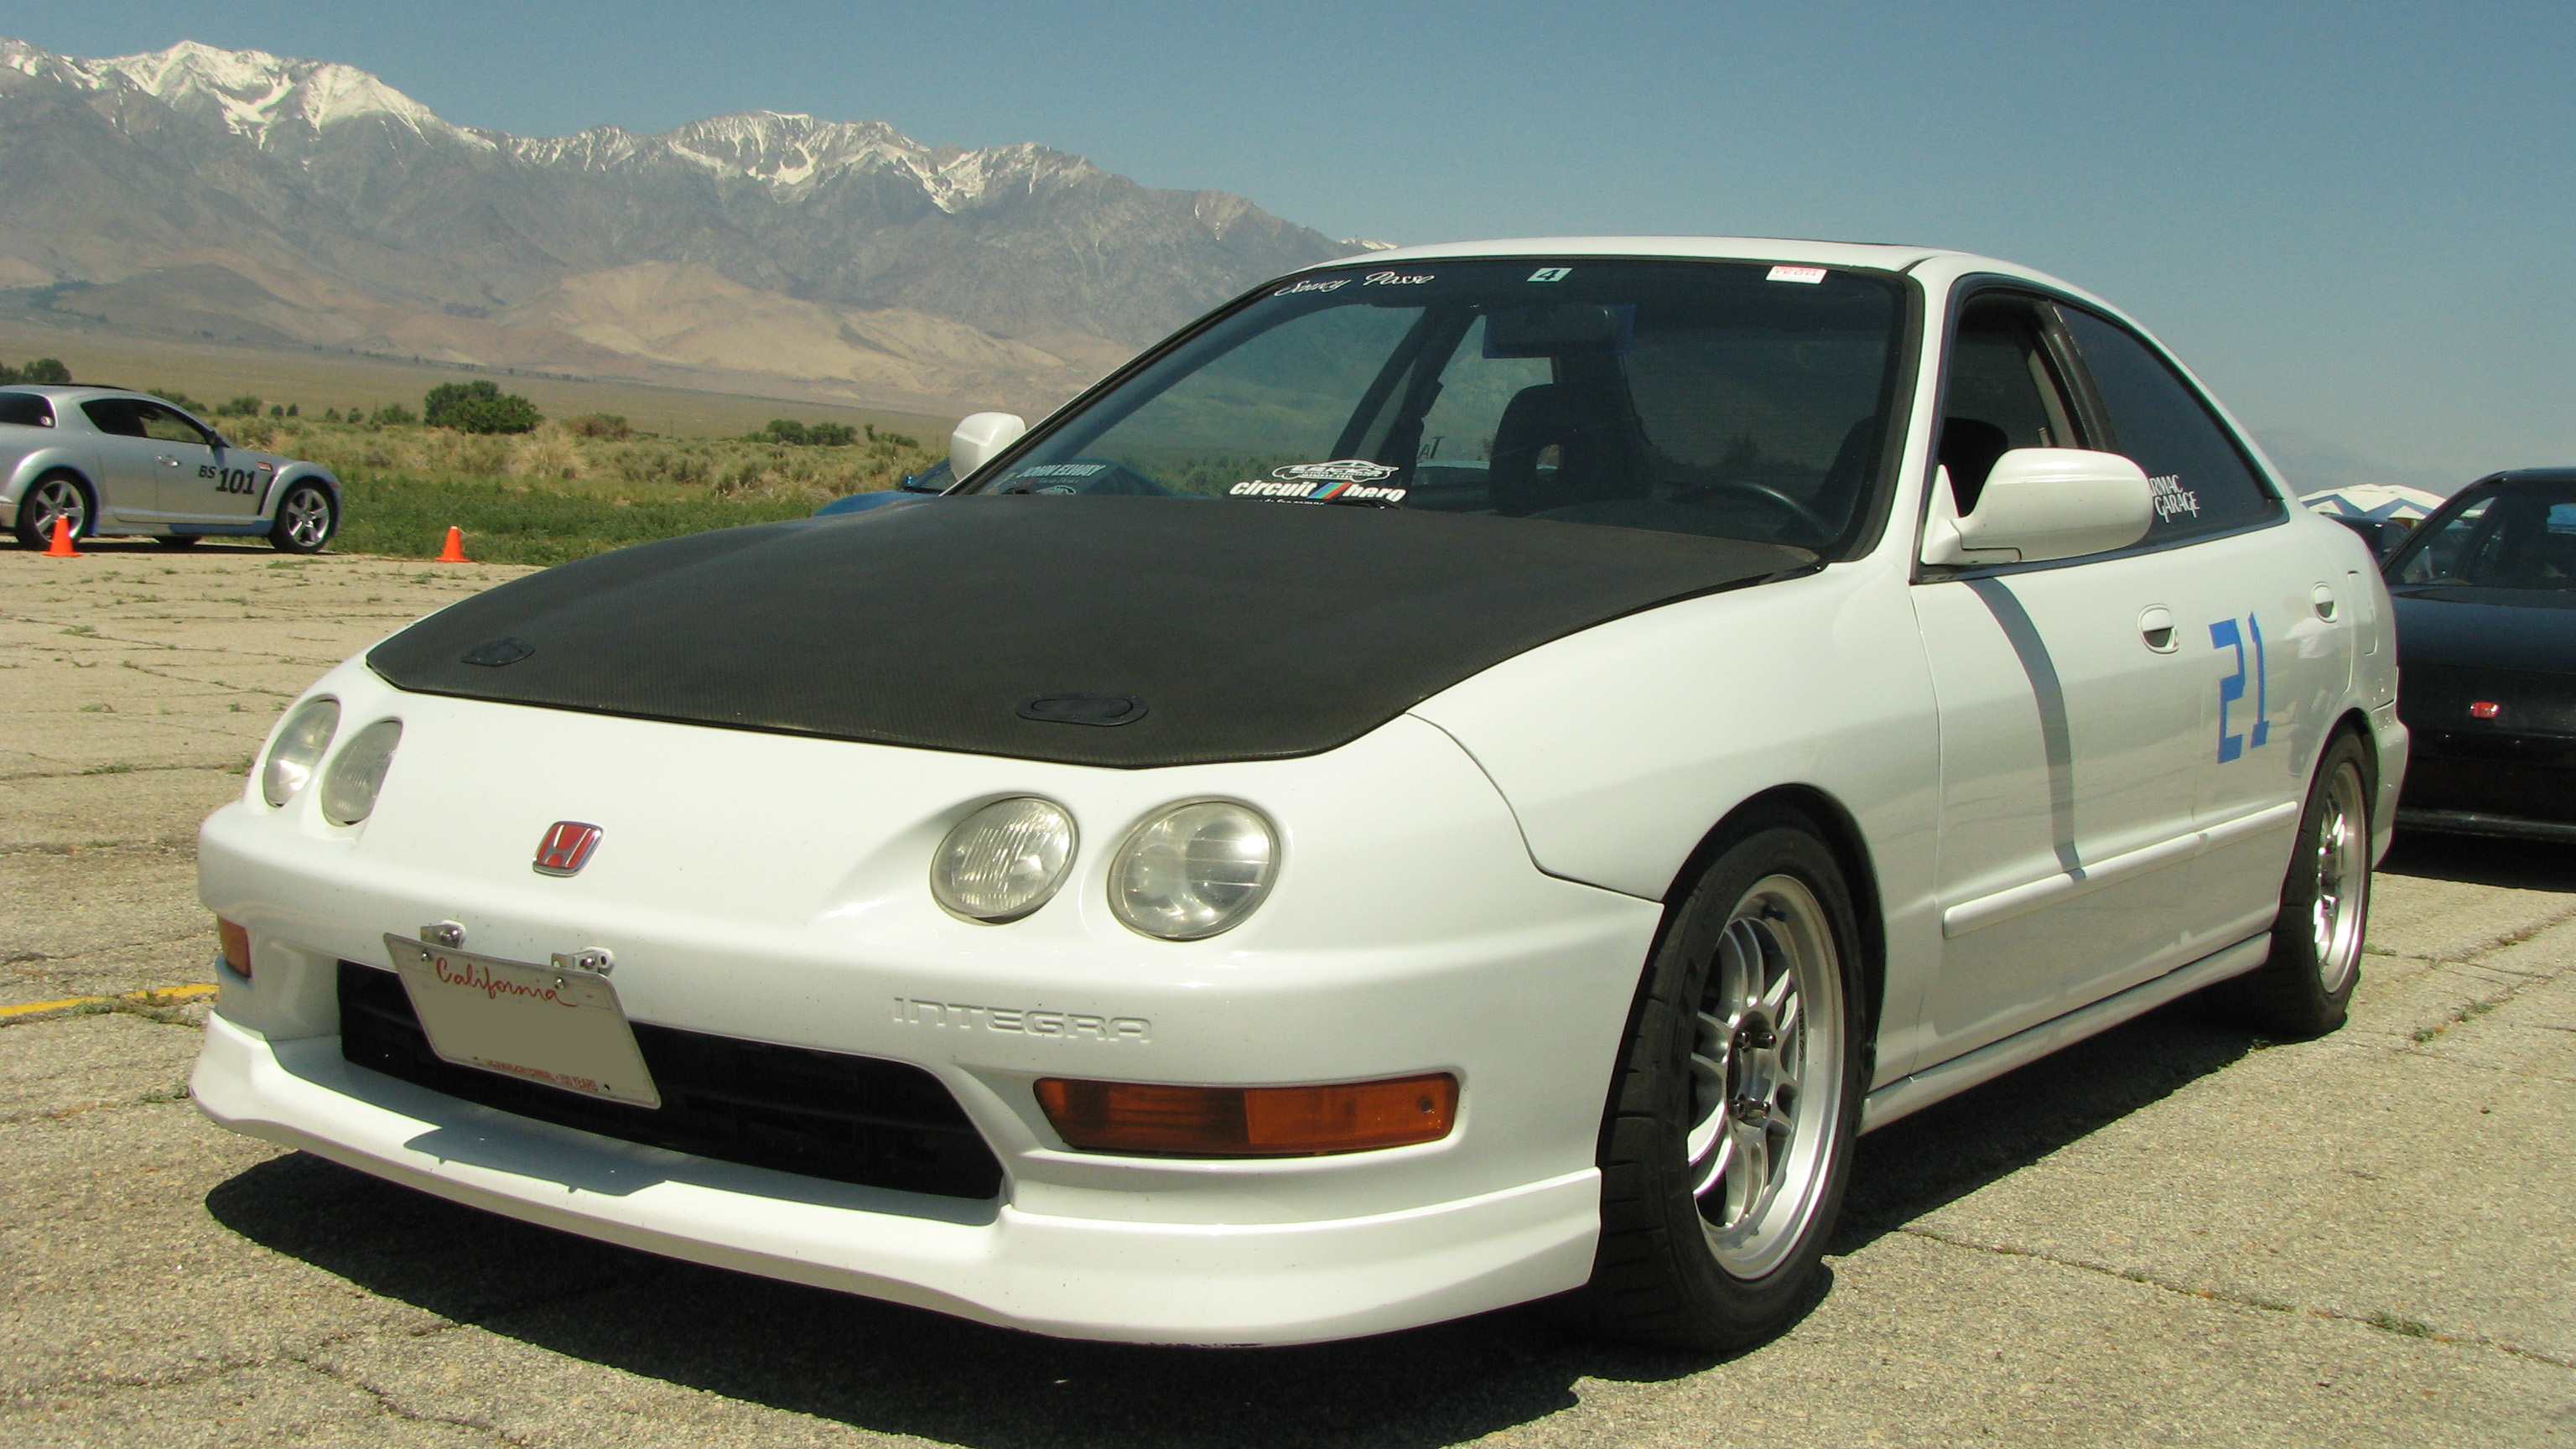 03a-fastest-unindexed-time-of-day-integra